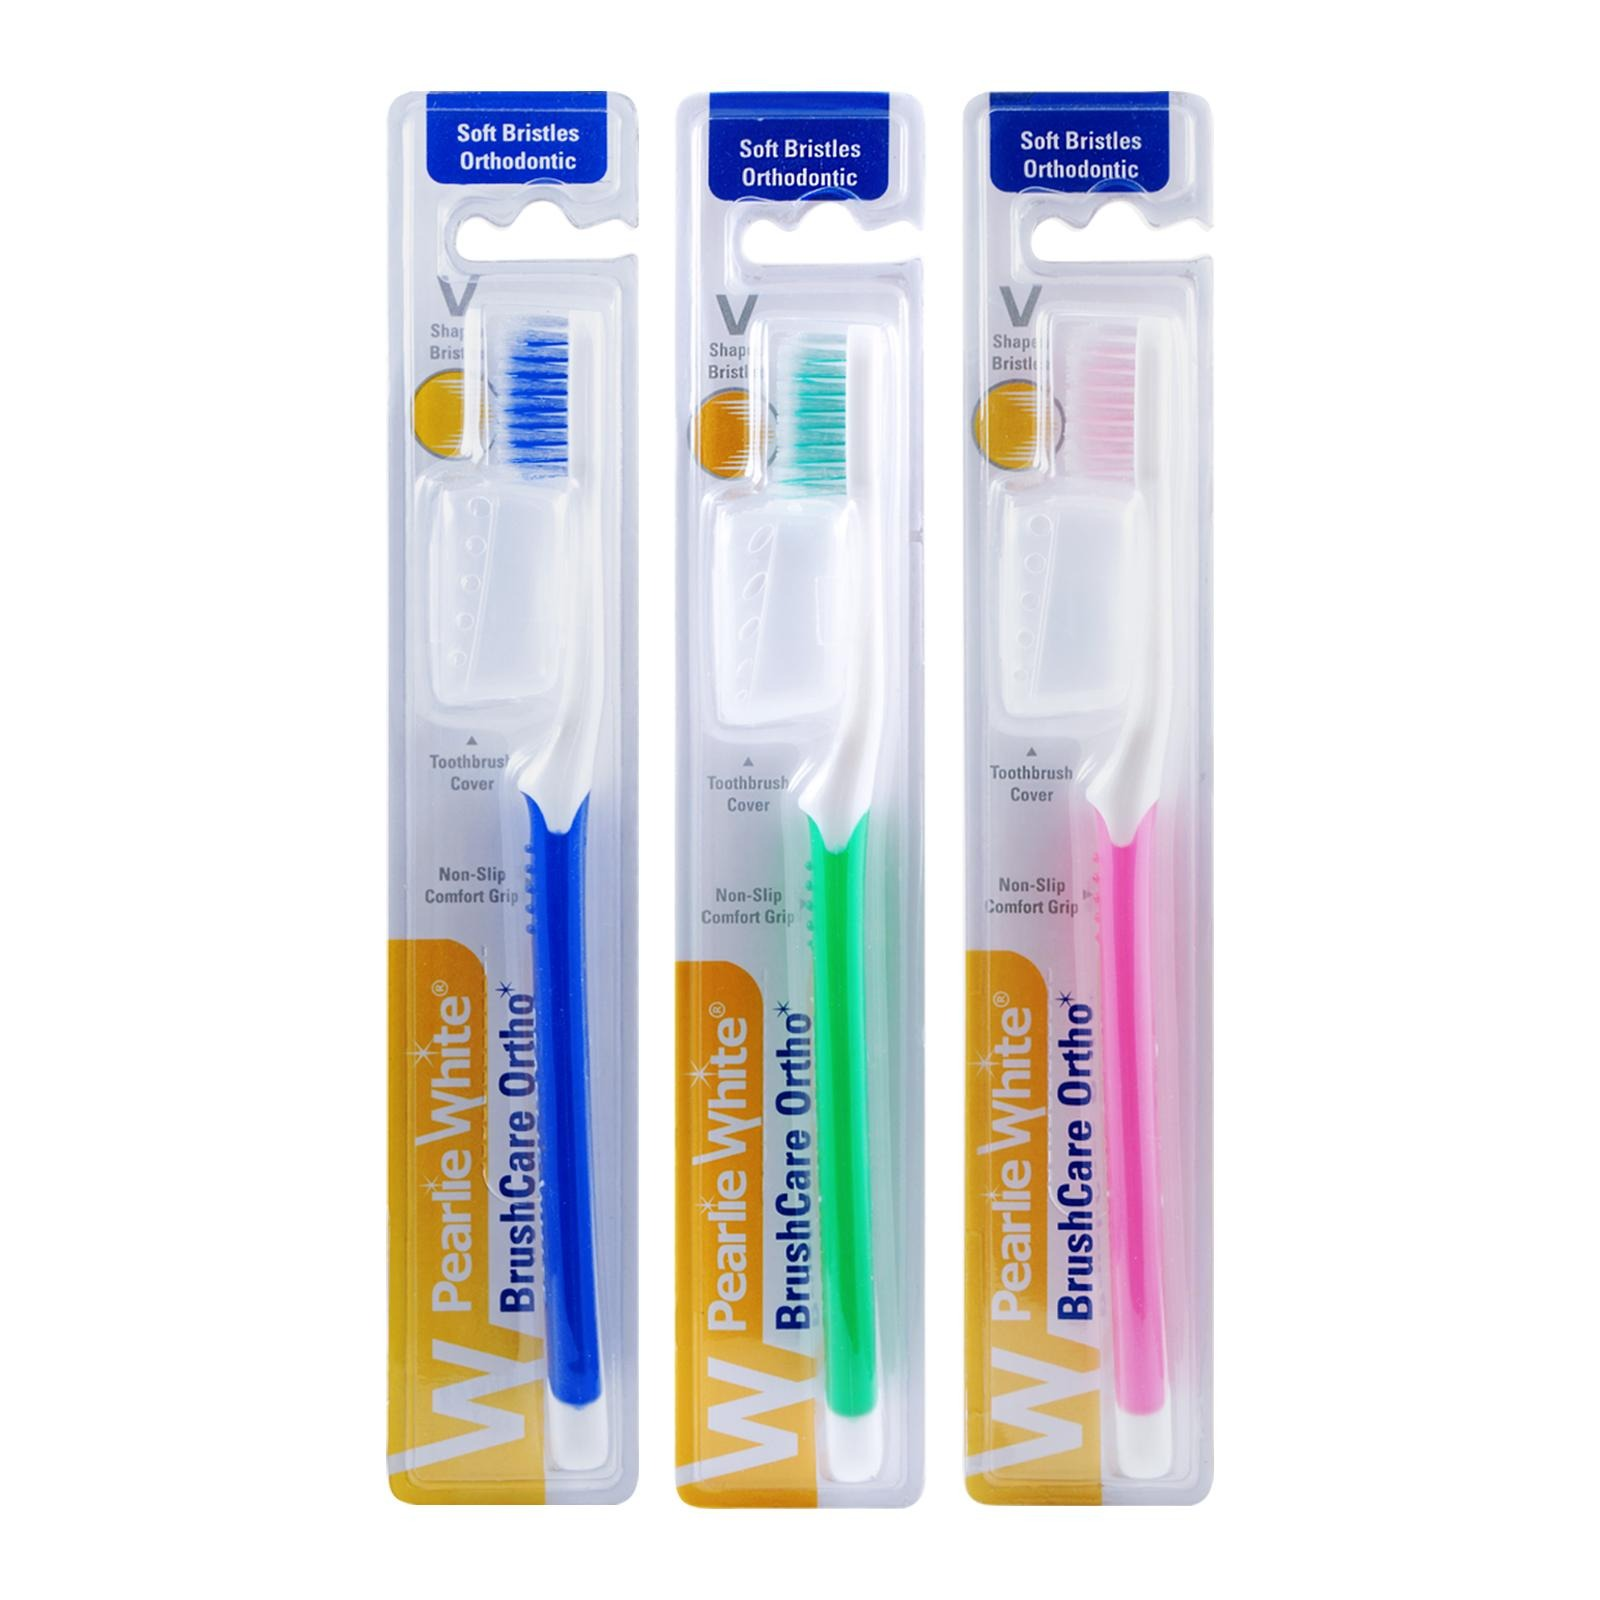 Pearlie White BrushCare Ortho Soft Toothbrush Triple Pack